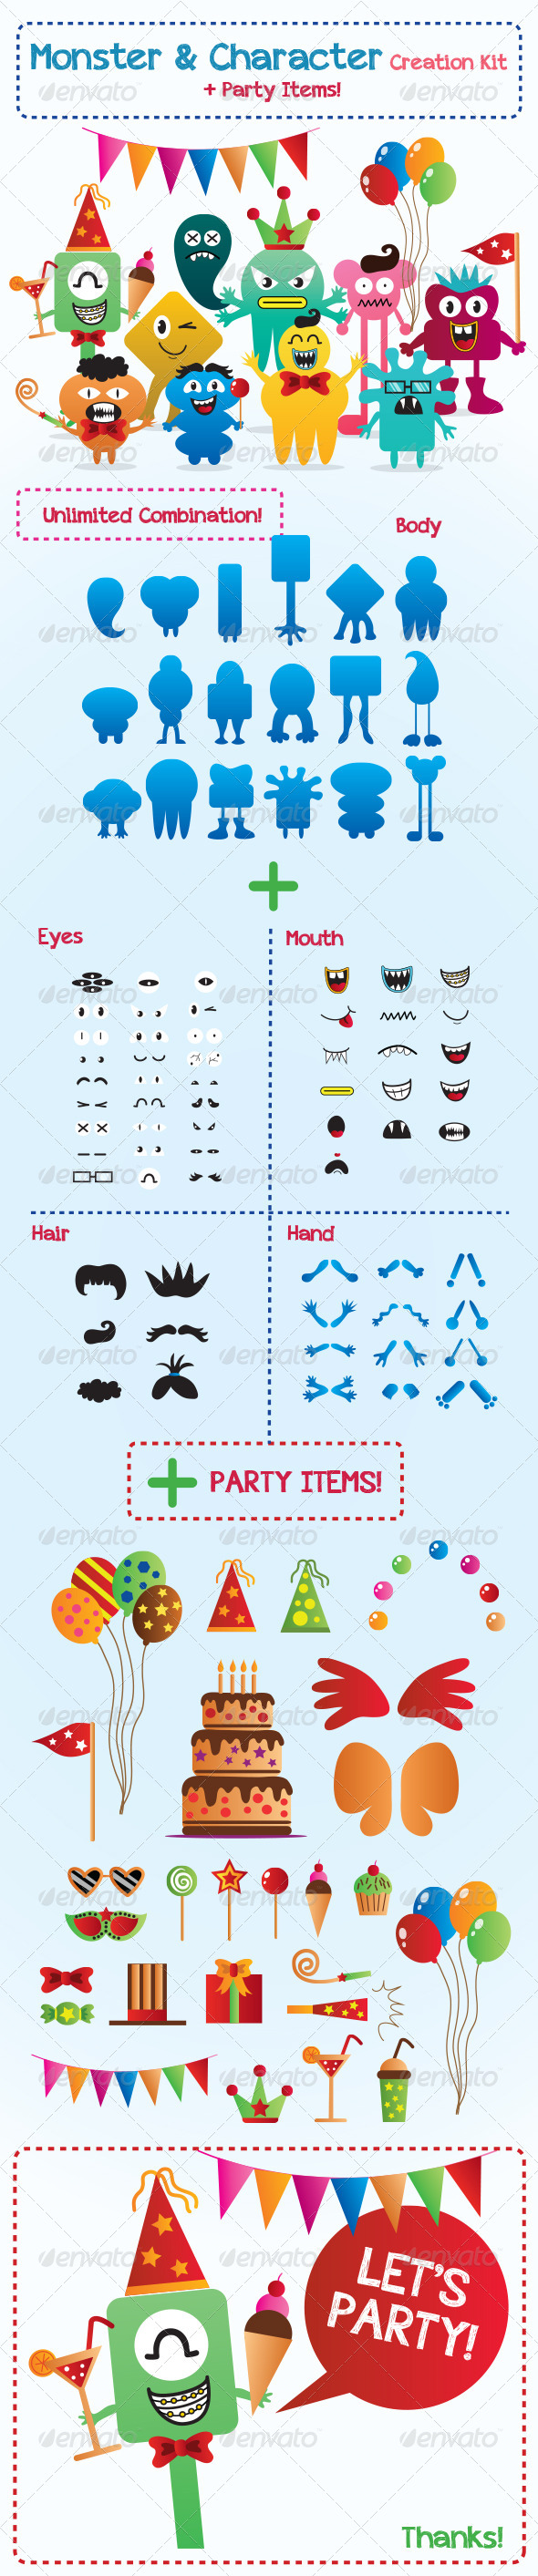 GraphicRiver Monster and Character Creation Kit with Party Items 5984405